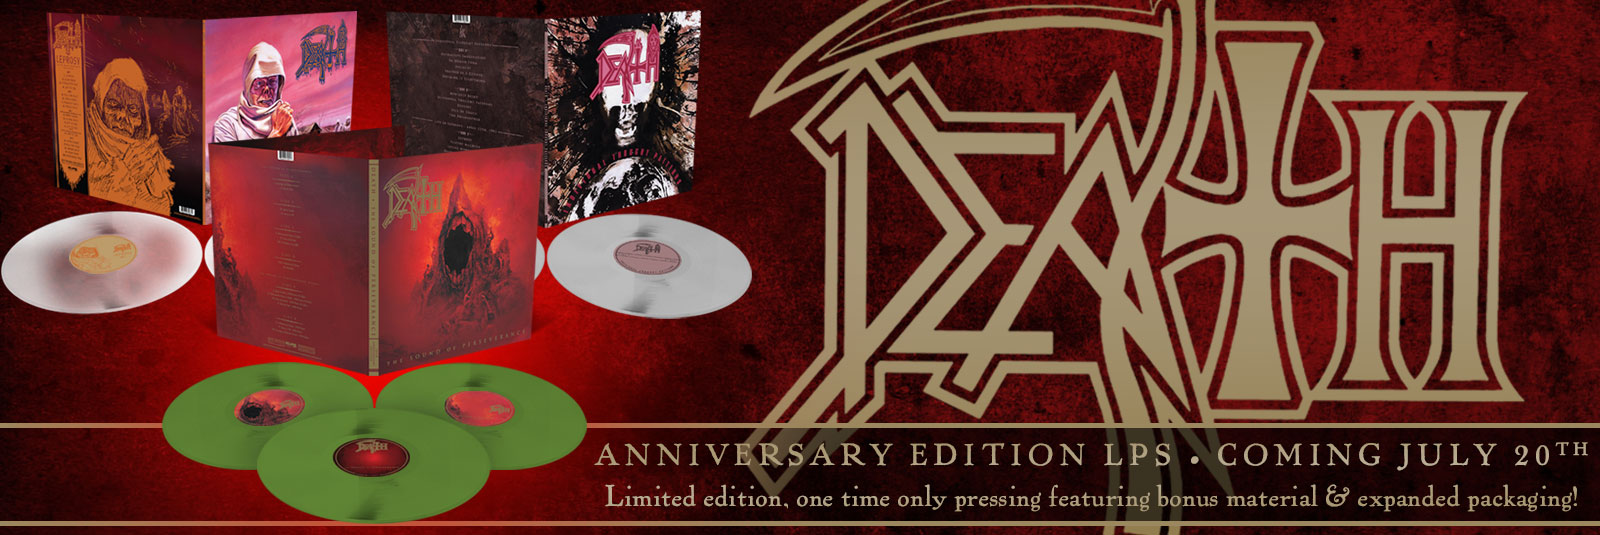 death-anniversary-vinyl-leprosy-the-sound-of-perseverance-individual-thought-patterns